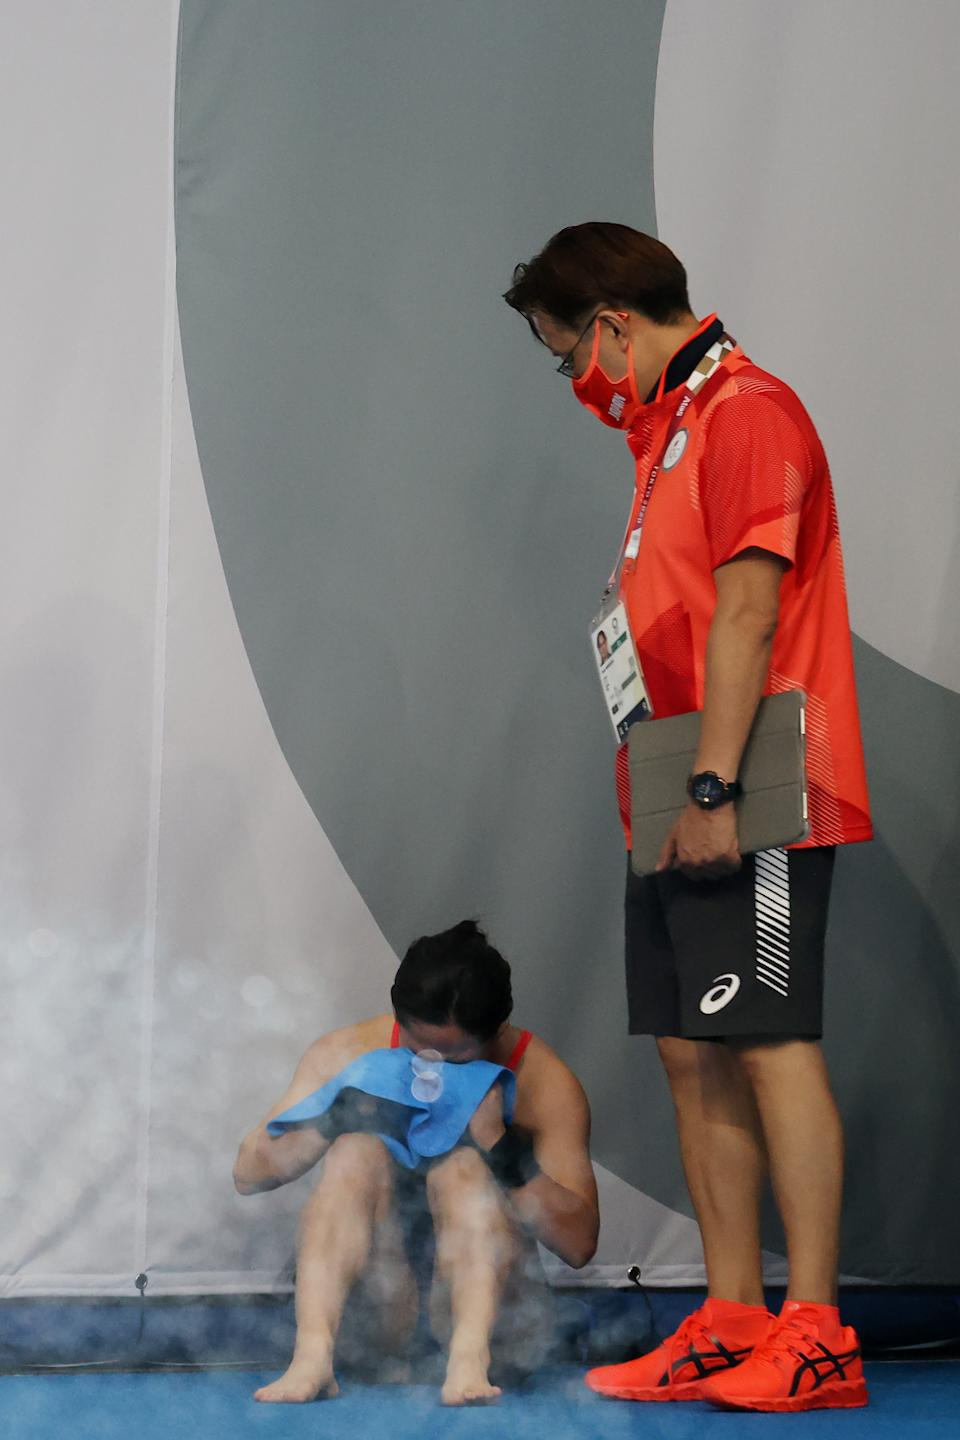 TOKYO, JAPAN - JULY 27: Minami Itahashi of Team Japan reacts after her final dive during the Women's Synchronised 10m Platform Final on day four of the Tokyo 2020 Olympic Games at Tokyo Aquatics Centre on July 27, 2021 in Tokyo, Japan. (Photo by Al Bello/Getty Images)